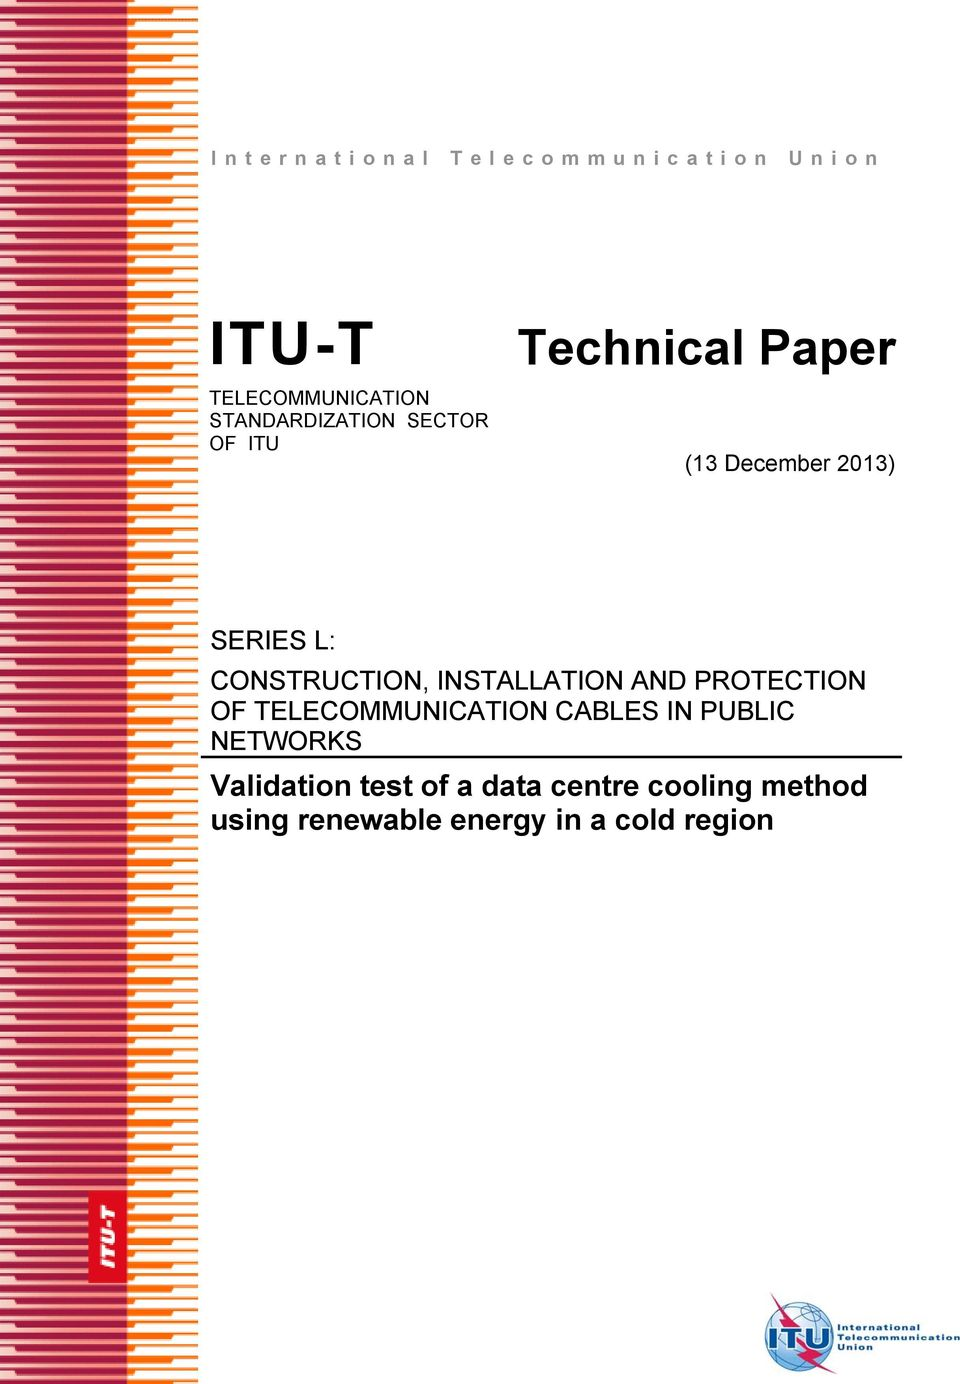 INSTALLATION AND PROTECTION OF TELECOMMUNICATION CABLES IN PUBLIC NETWORKS